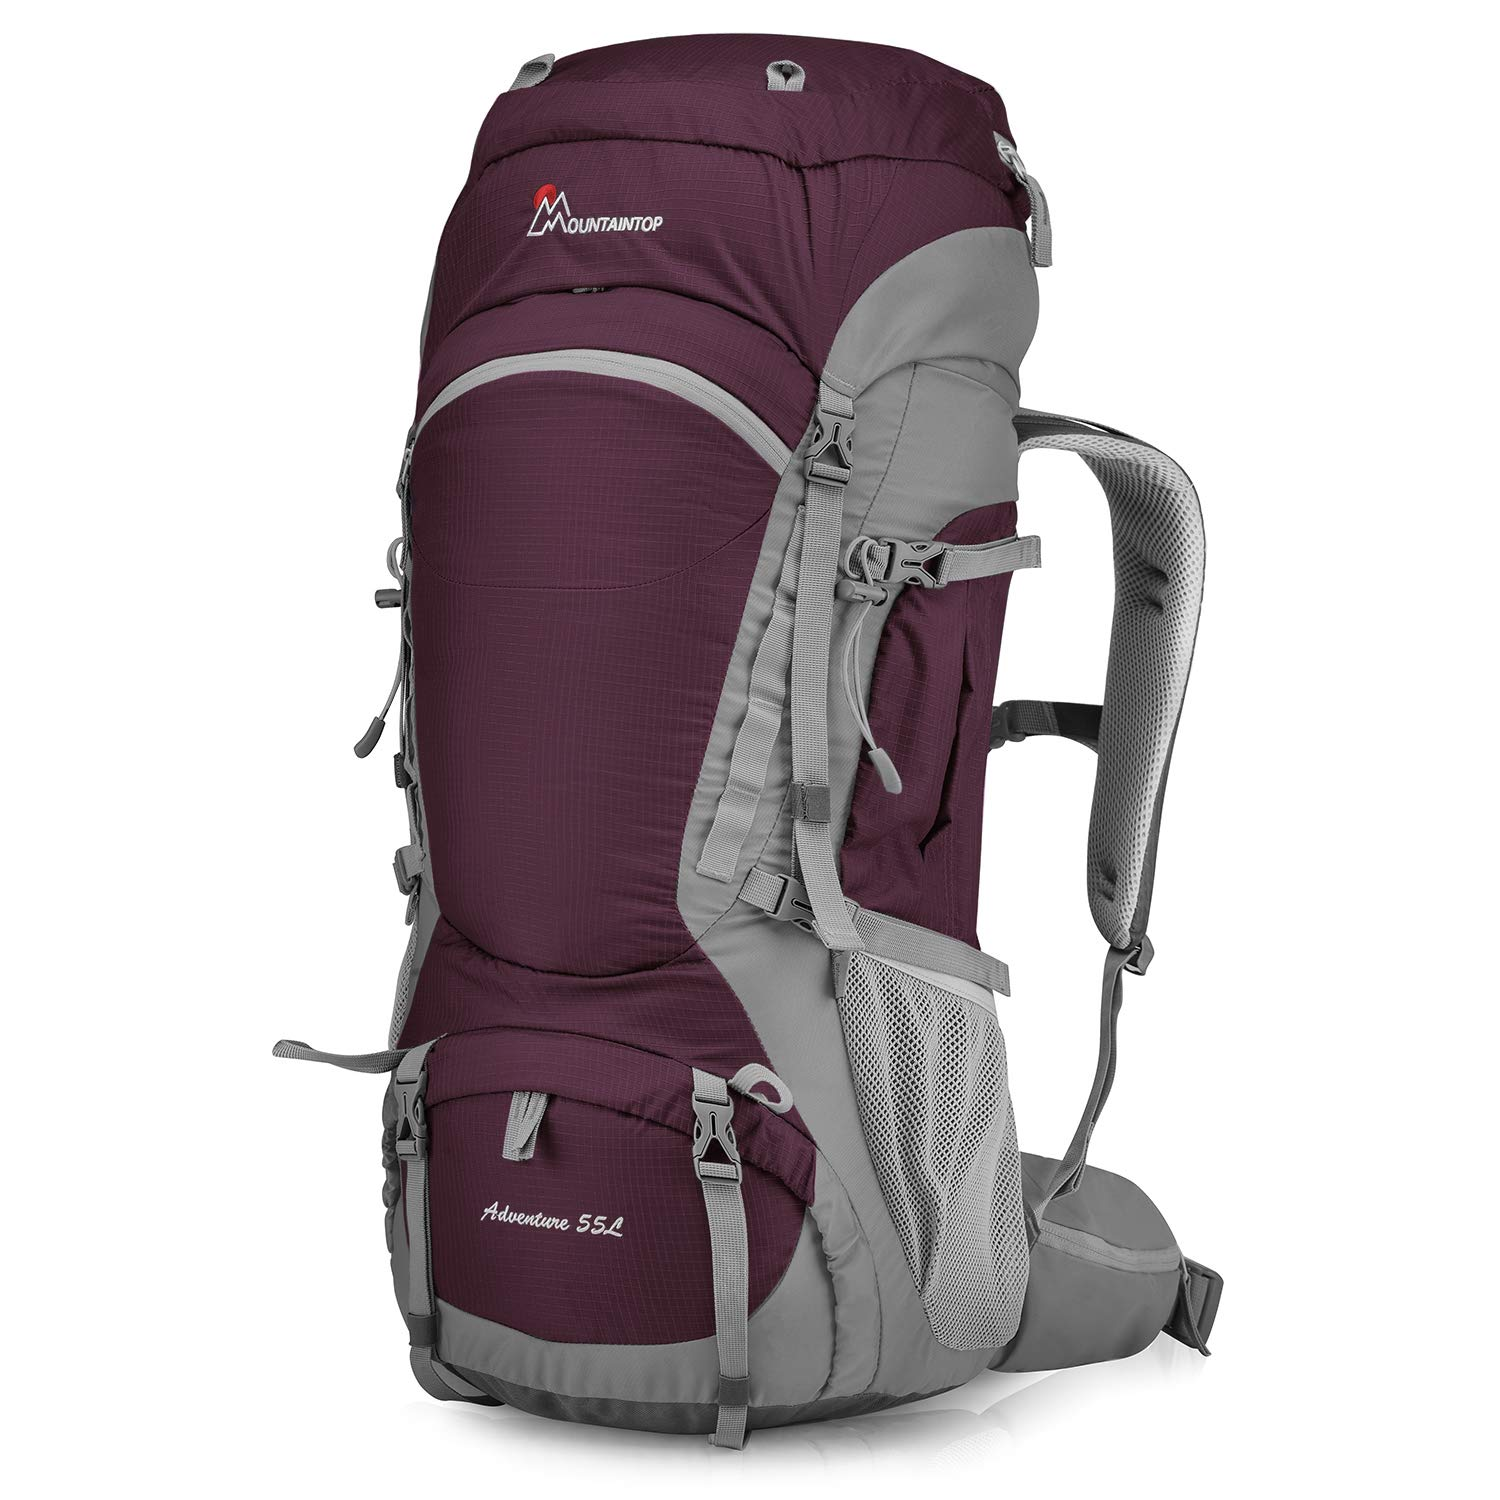 MOUNTAINTOP 55L Hiking Internal Frame Backpack with Rain Cover by MOUNTAINTOP